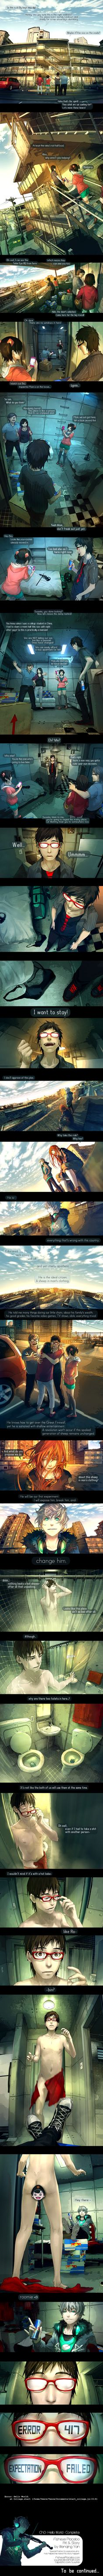 Fisheye placebo : Ch.0 Hello world part 8 (end Ch0) by Wenqing Yan Fisheye placebo by yuumei on deviantART